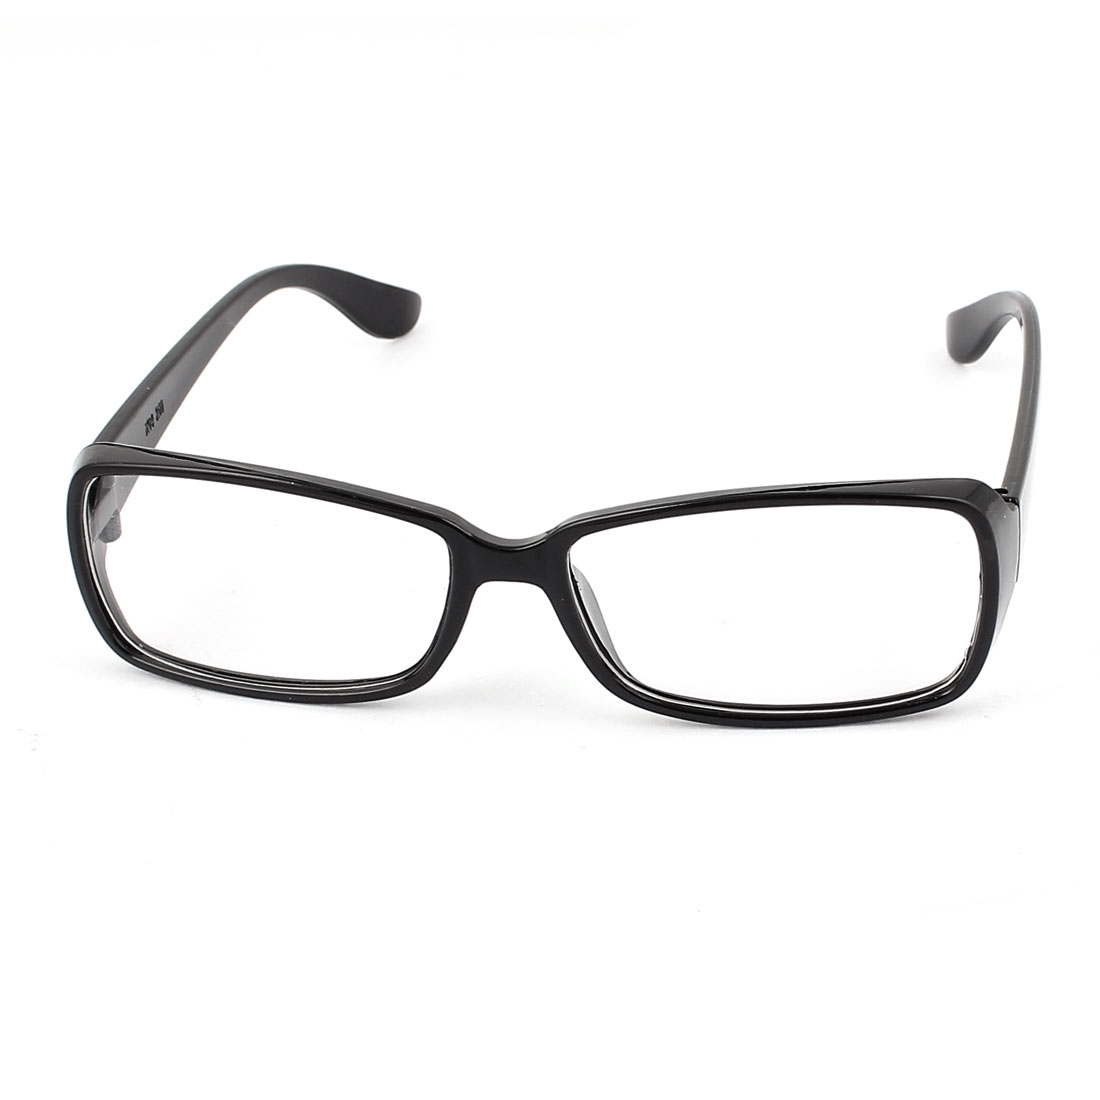 Unisex Clear Lens Spectacles Eyeglasses Eye Wear Plain Glasses Black